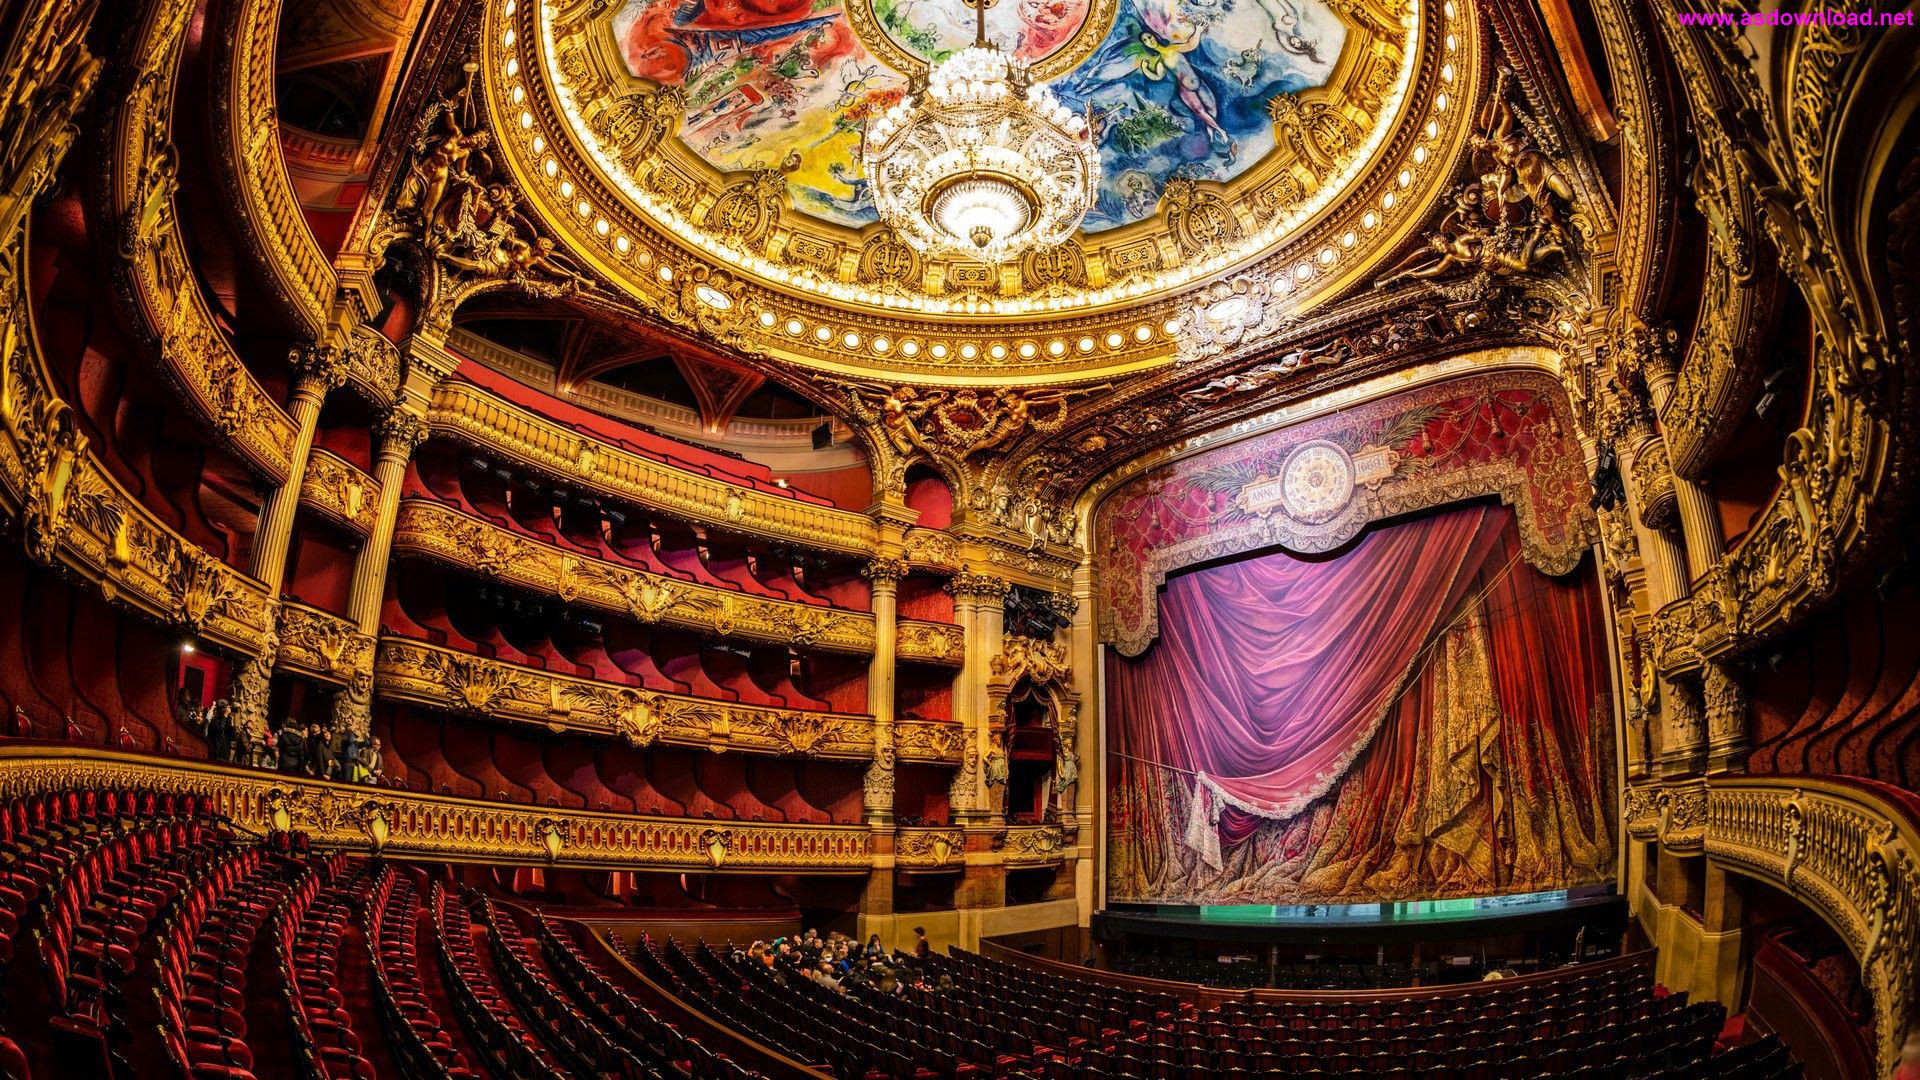 Palais Garnier Auditorium Design Wallpaper دانلود والپیپر جدید 2015